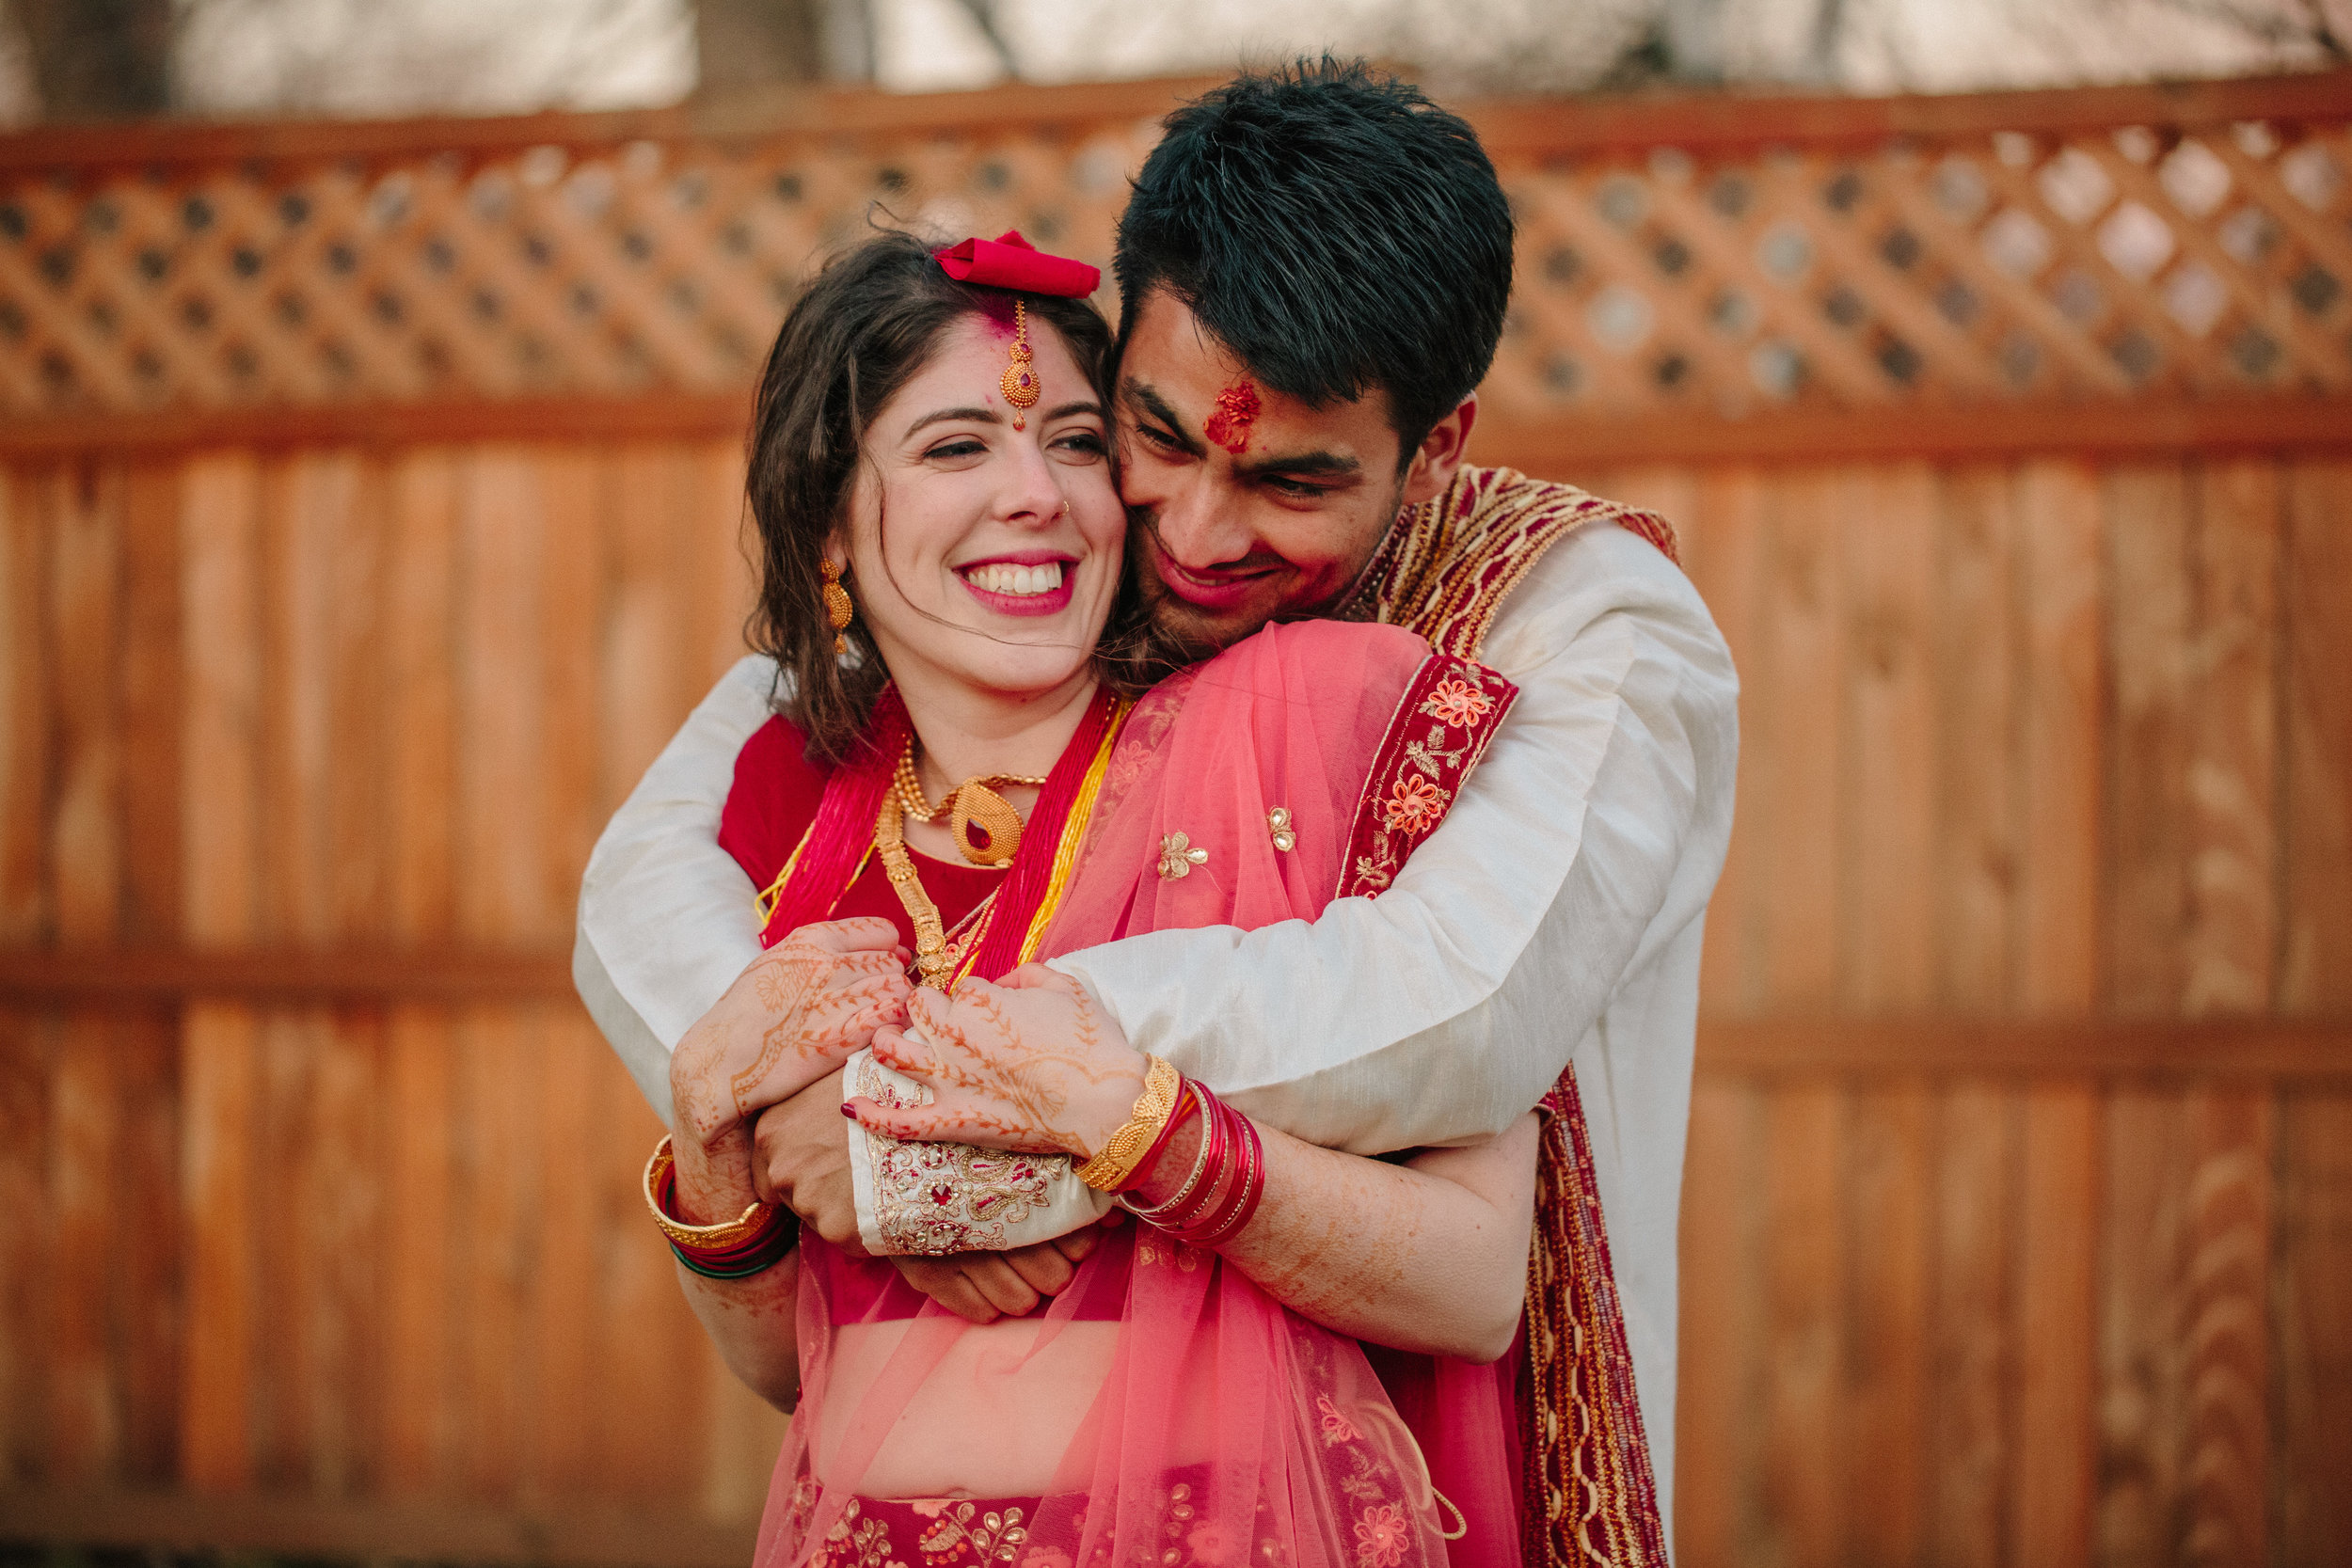 Nepali-American wedding photos of bride and groom in Des Moines Iowa